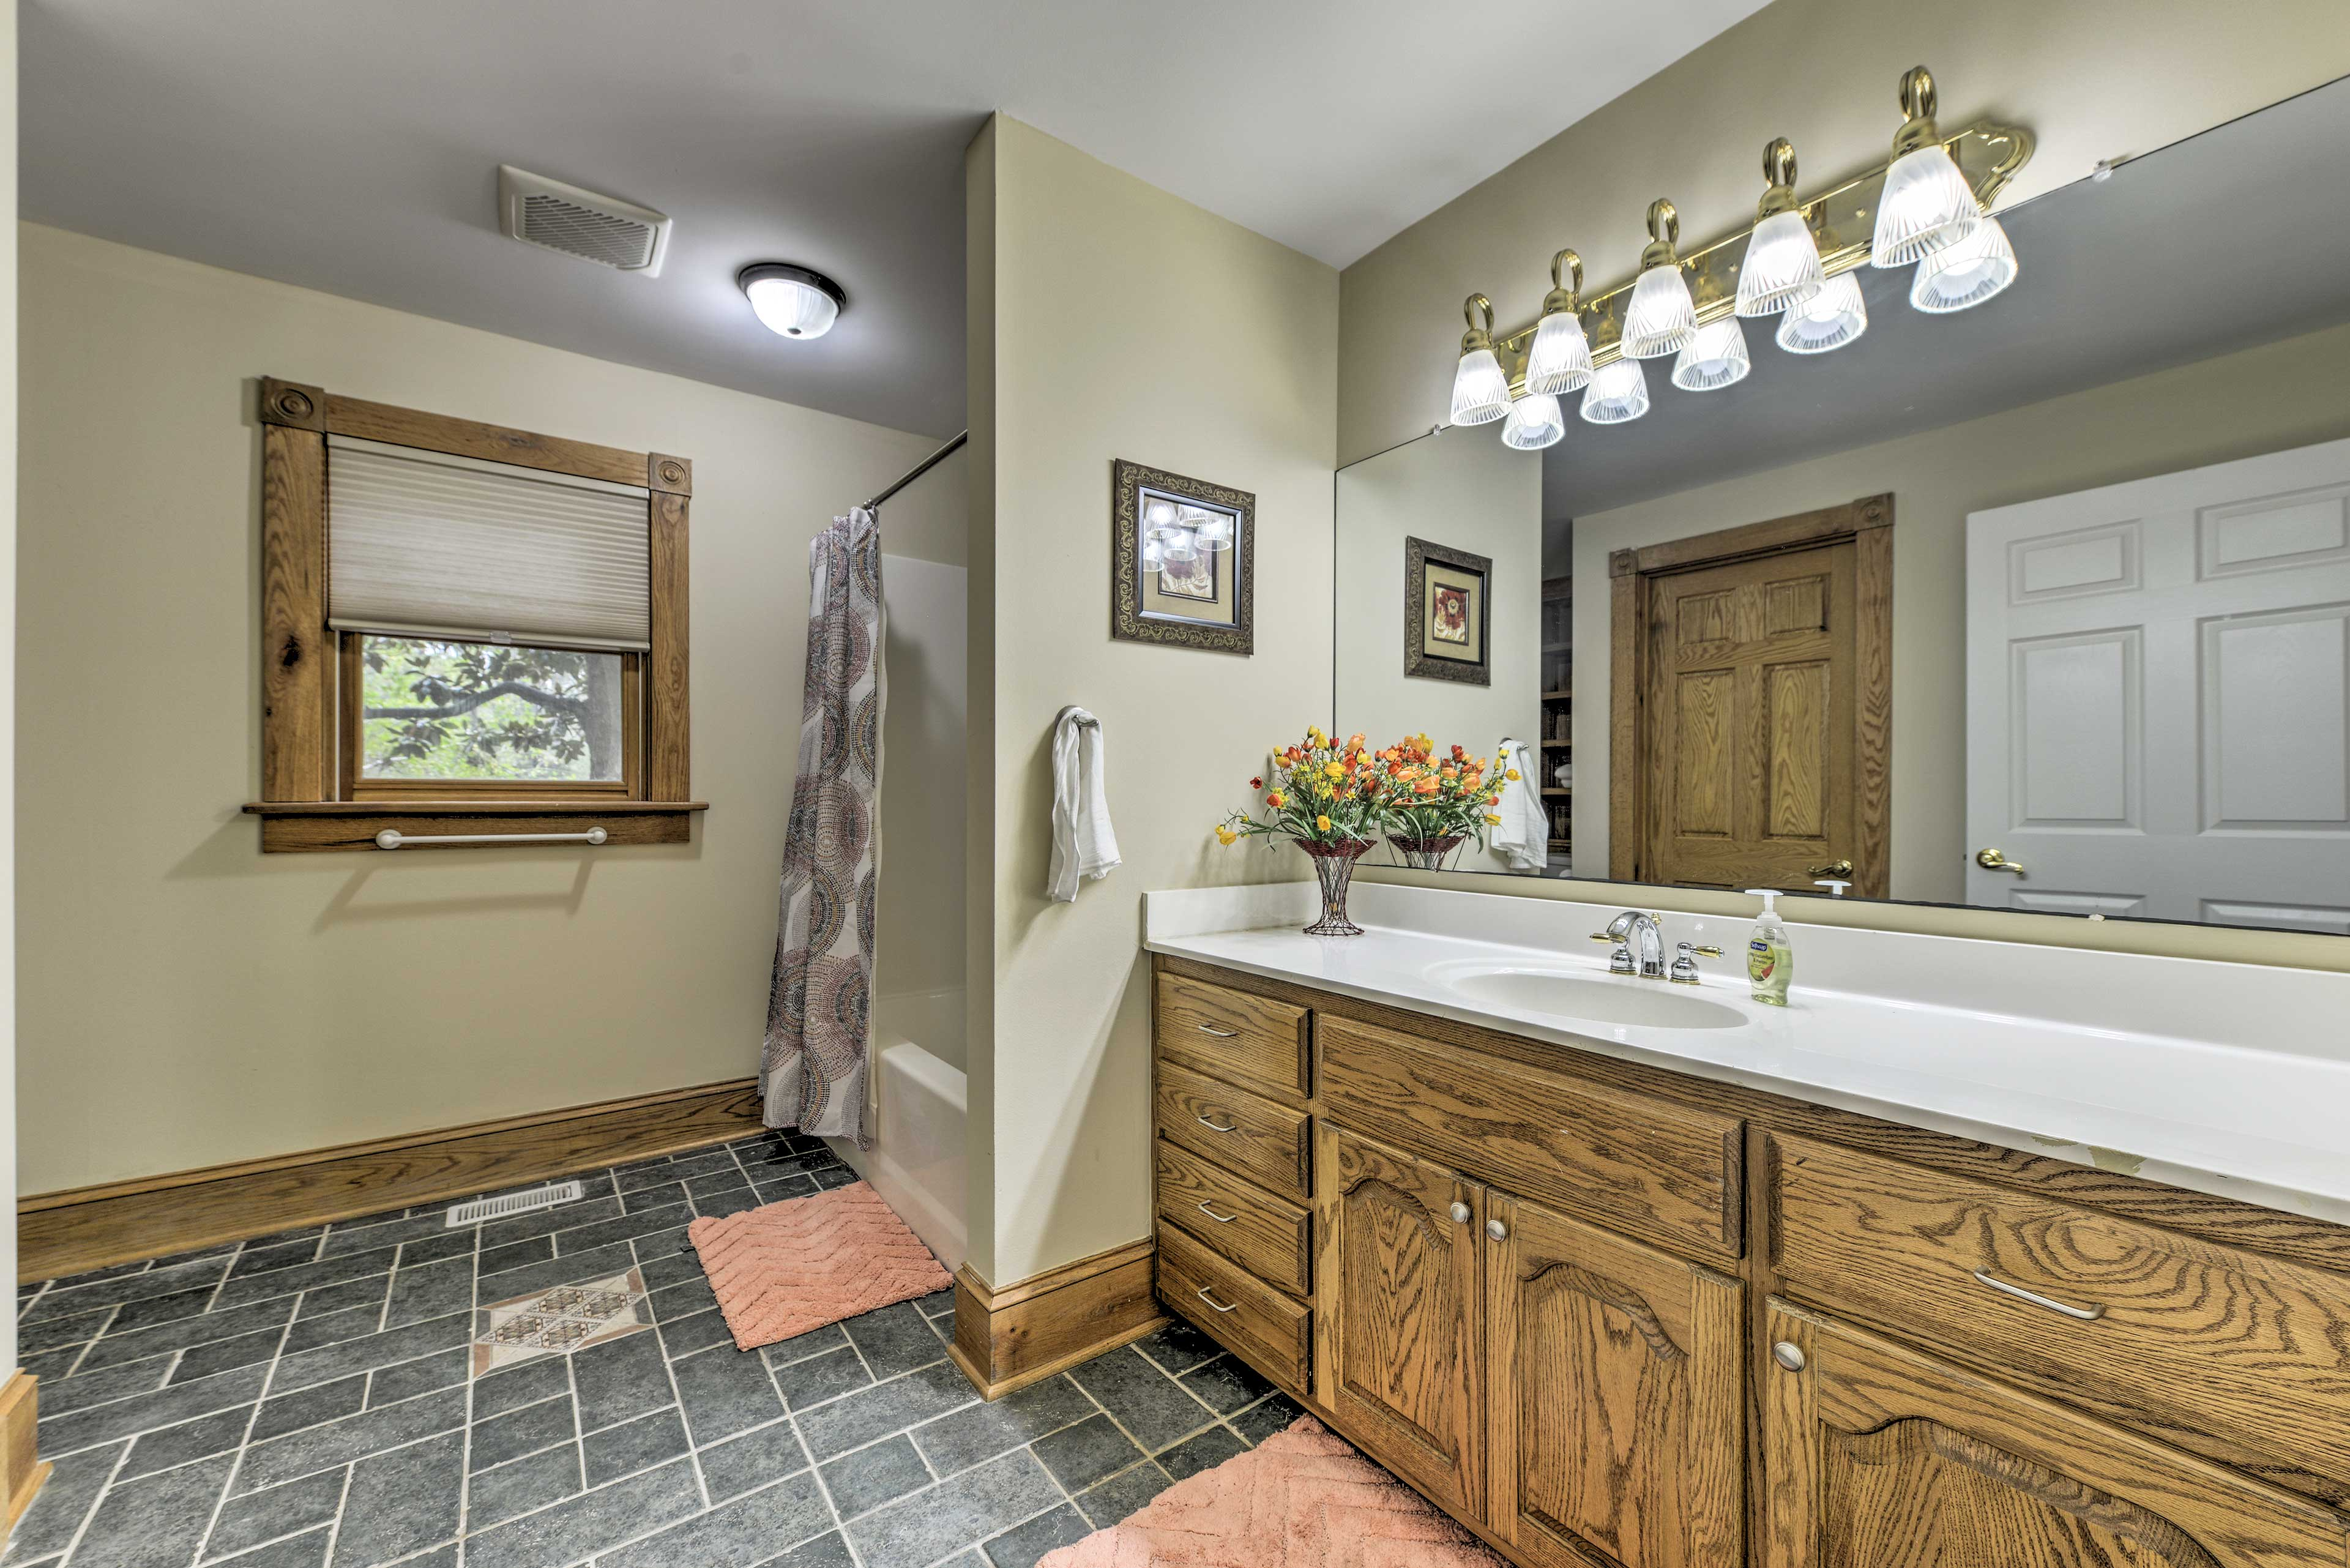 The home offers 3.5 bathrooms for you to use.